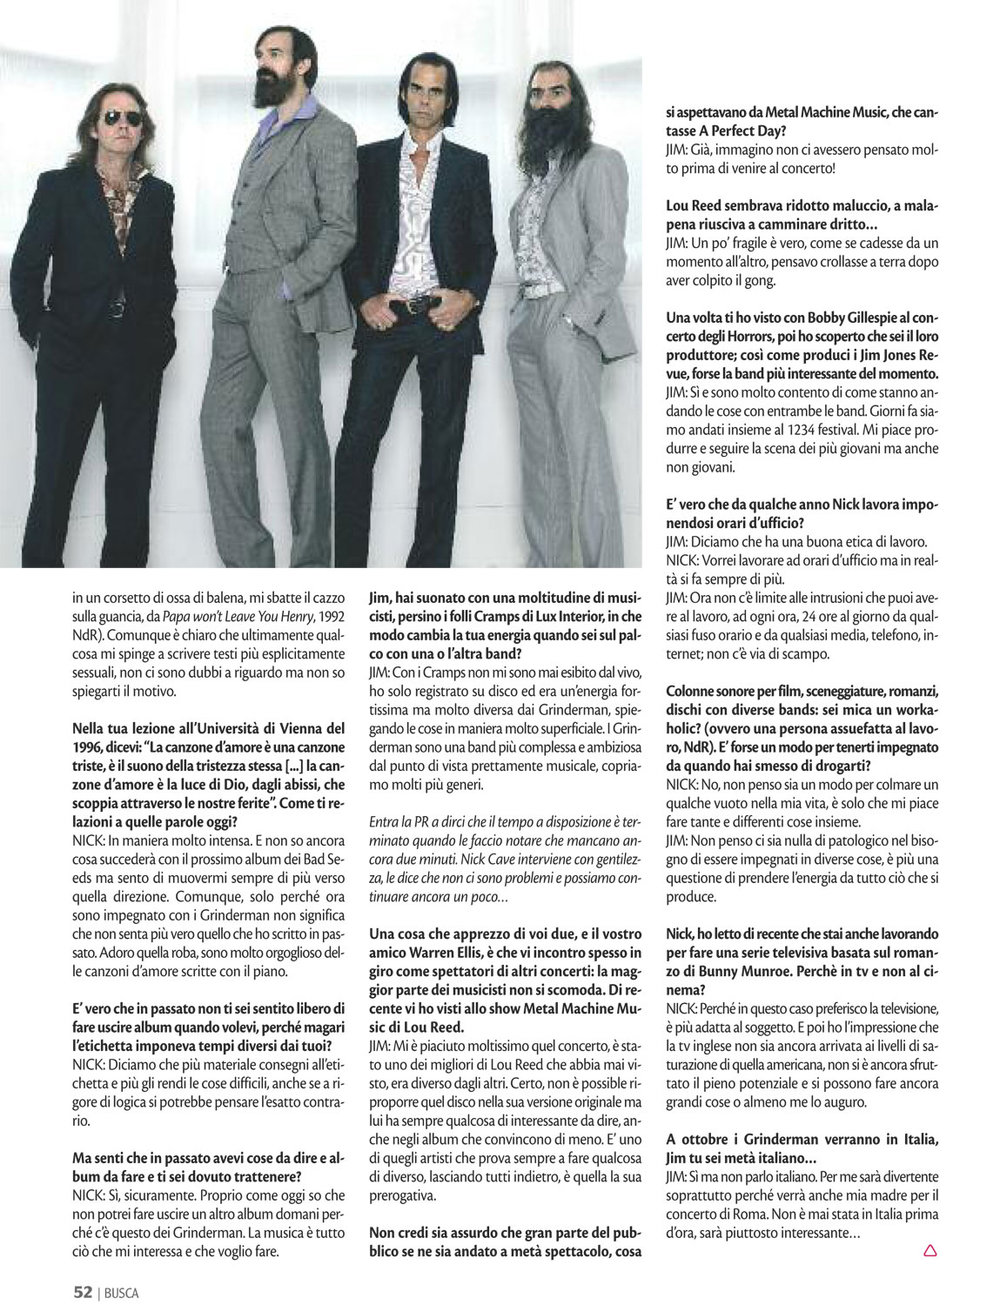 Buscadero: Grinderman interview